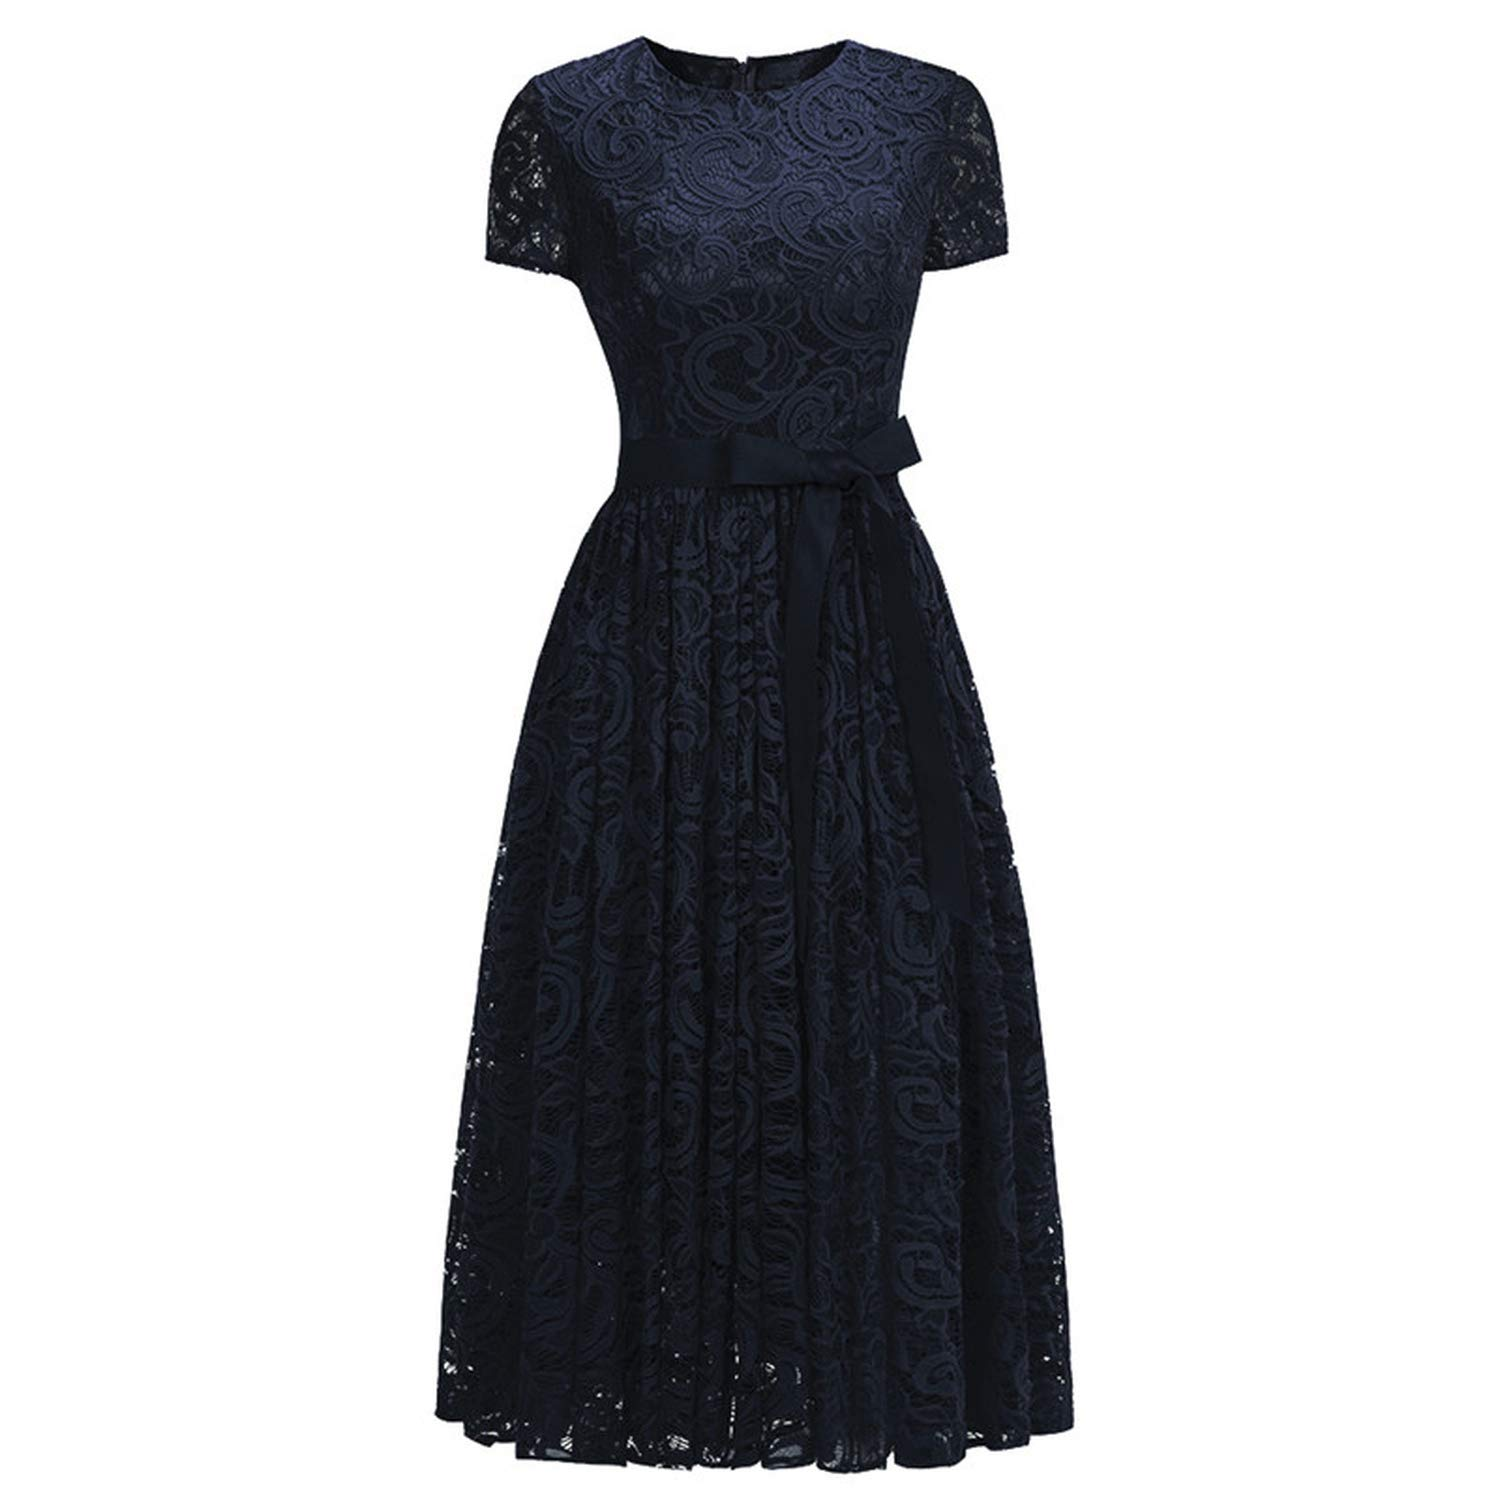 Navy bluee Sexy Elegant Pink Lace Short Evening Dress Cap Sleeve A line Evening Gown Party Dress